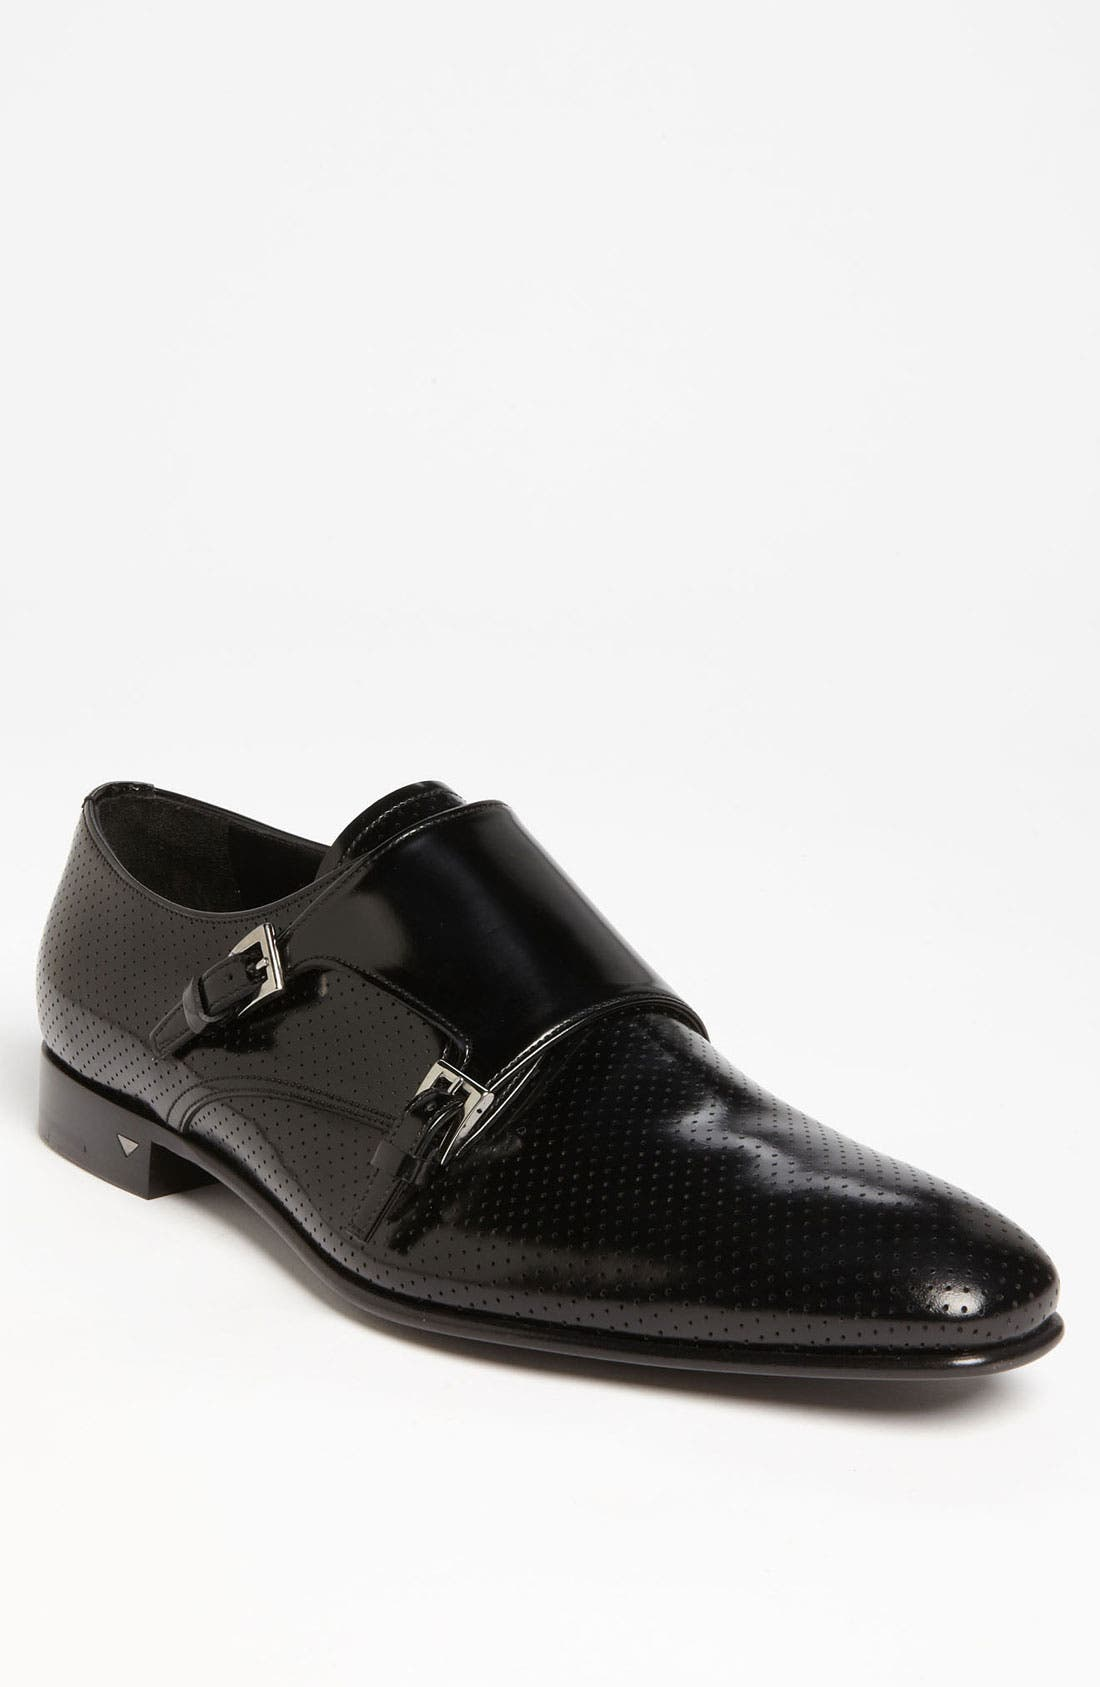 Main Image - Prada Perforated Double Monk Strap Slip-On